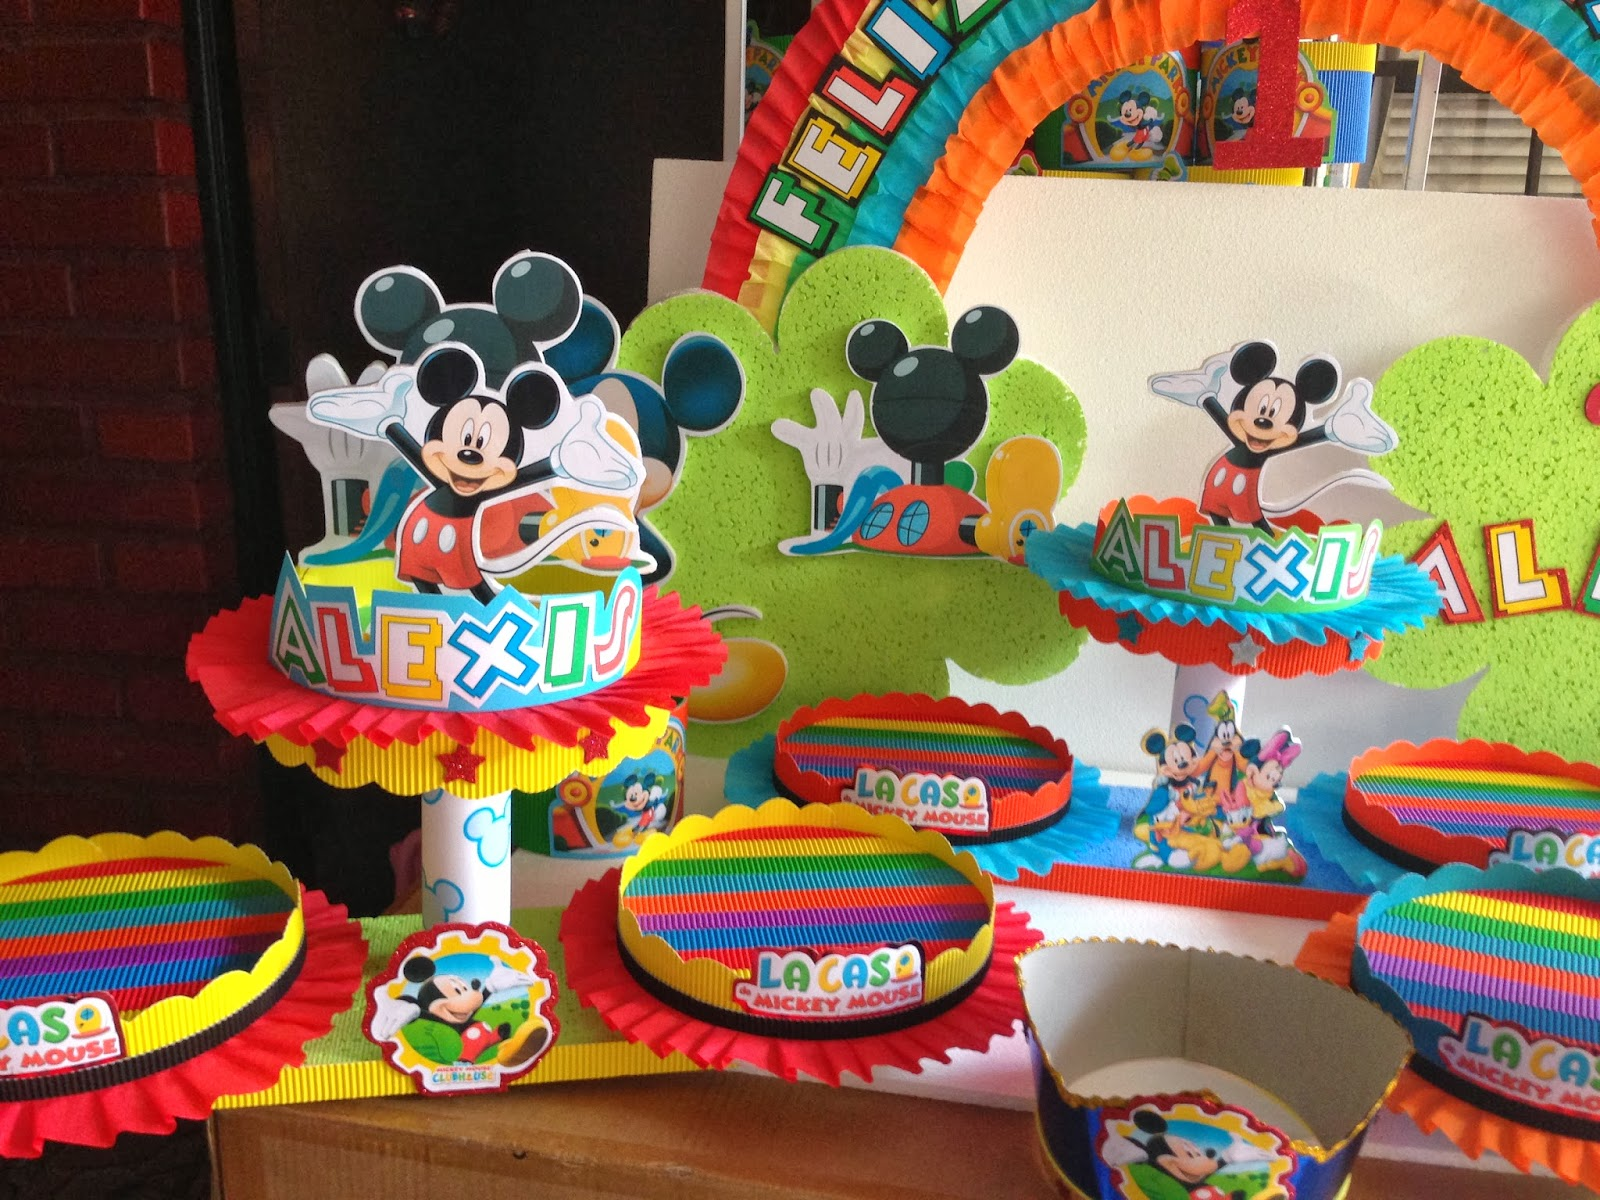 Decoraciones infantiles la casa de mickey mouse for Decoracion la casa de mickey mouse